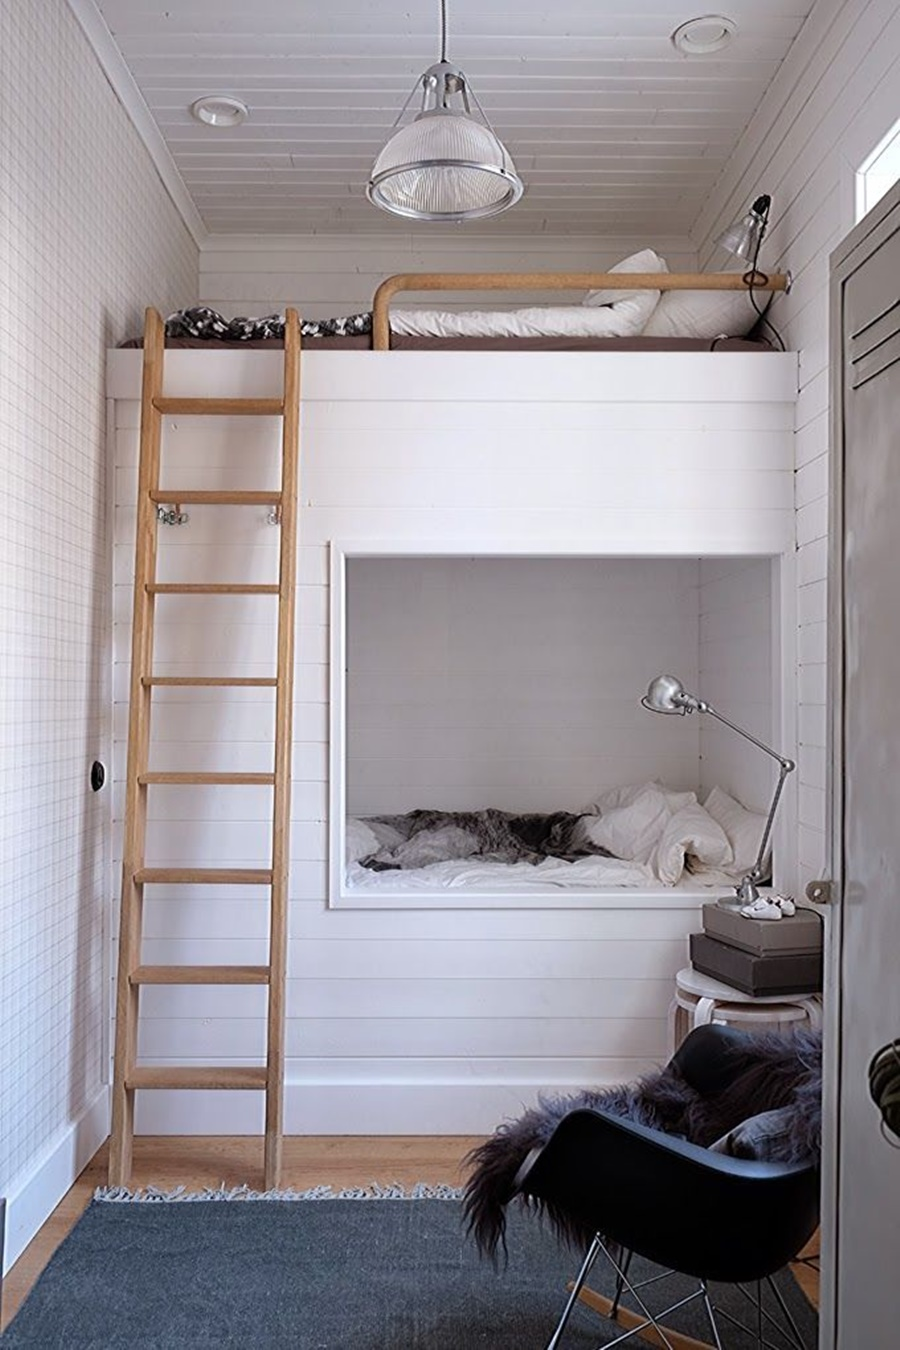 Bunk Bed with Stairs Plans | Pottery Barn Bunk Bed Reviews | Bunk Beds for Small Rooms